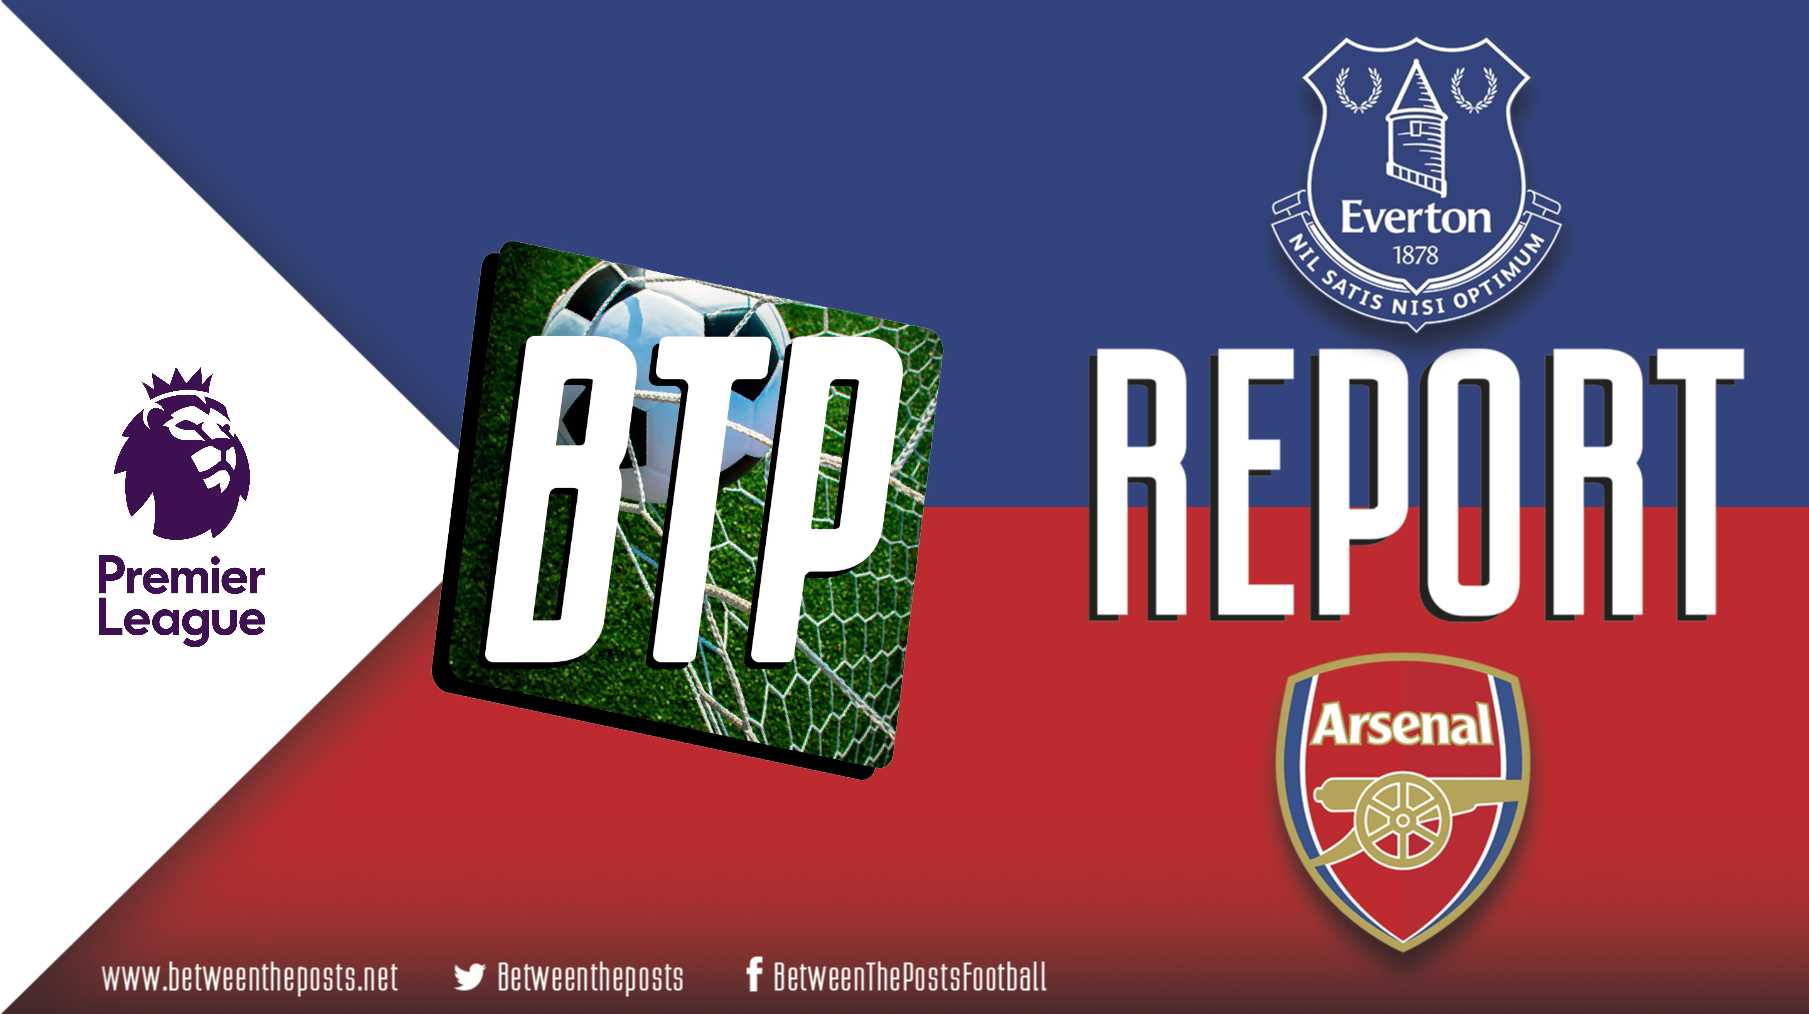 everton-arsenal